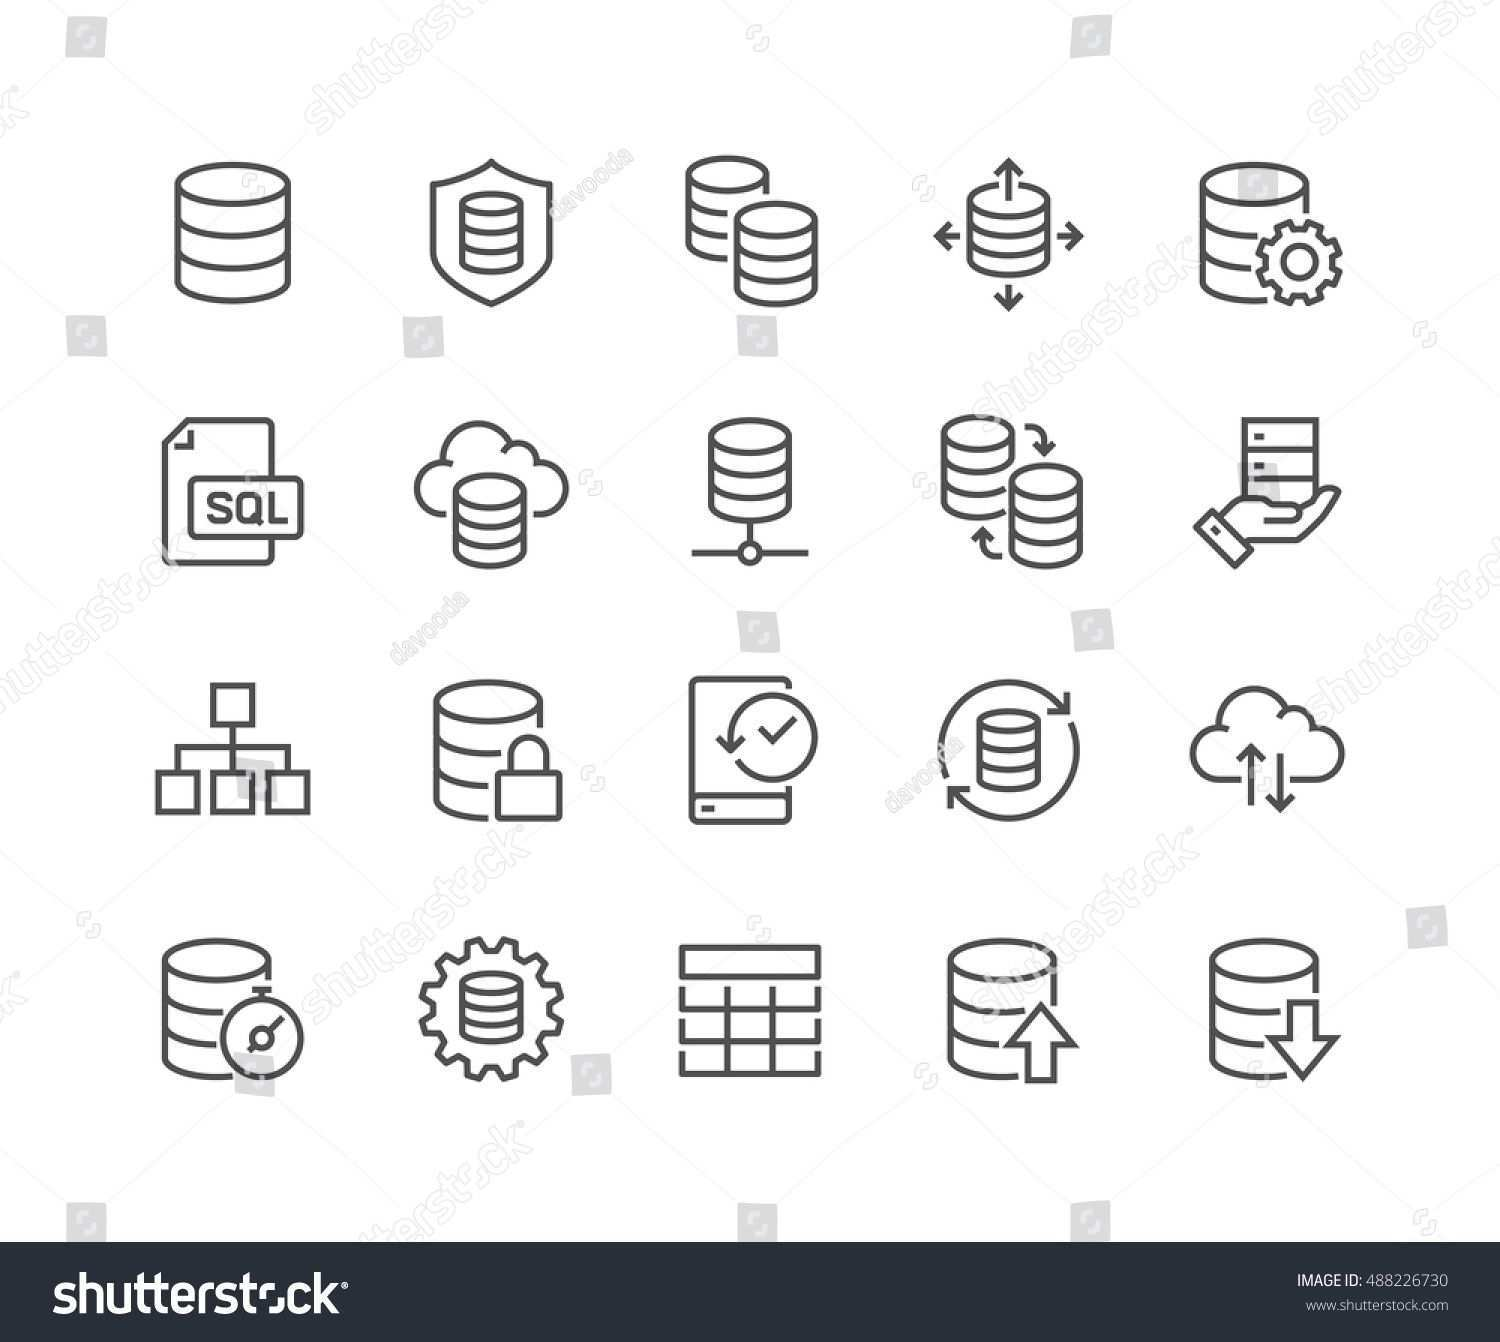 Simple Set Of Database Related Vector Line Icons Ncontains Such Icons As Backup Structure Data Transfer And More A Vector Template Design Wedding Vector